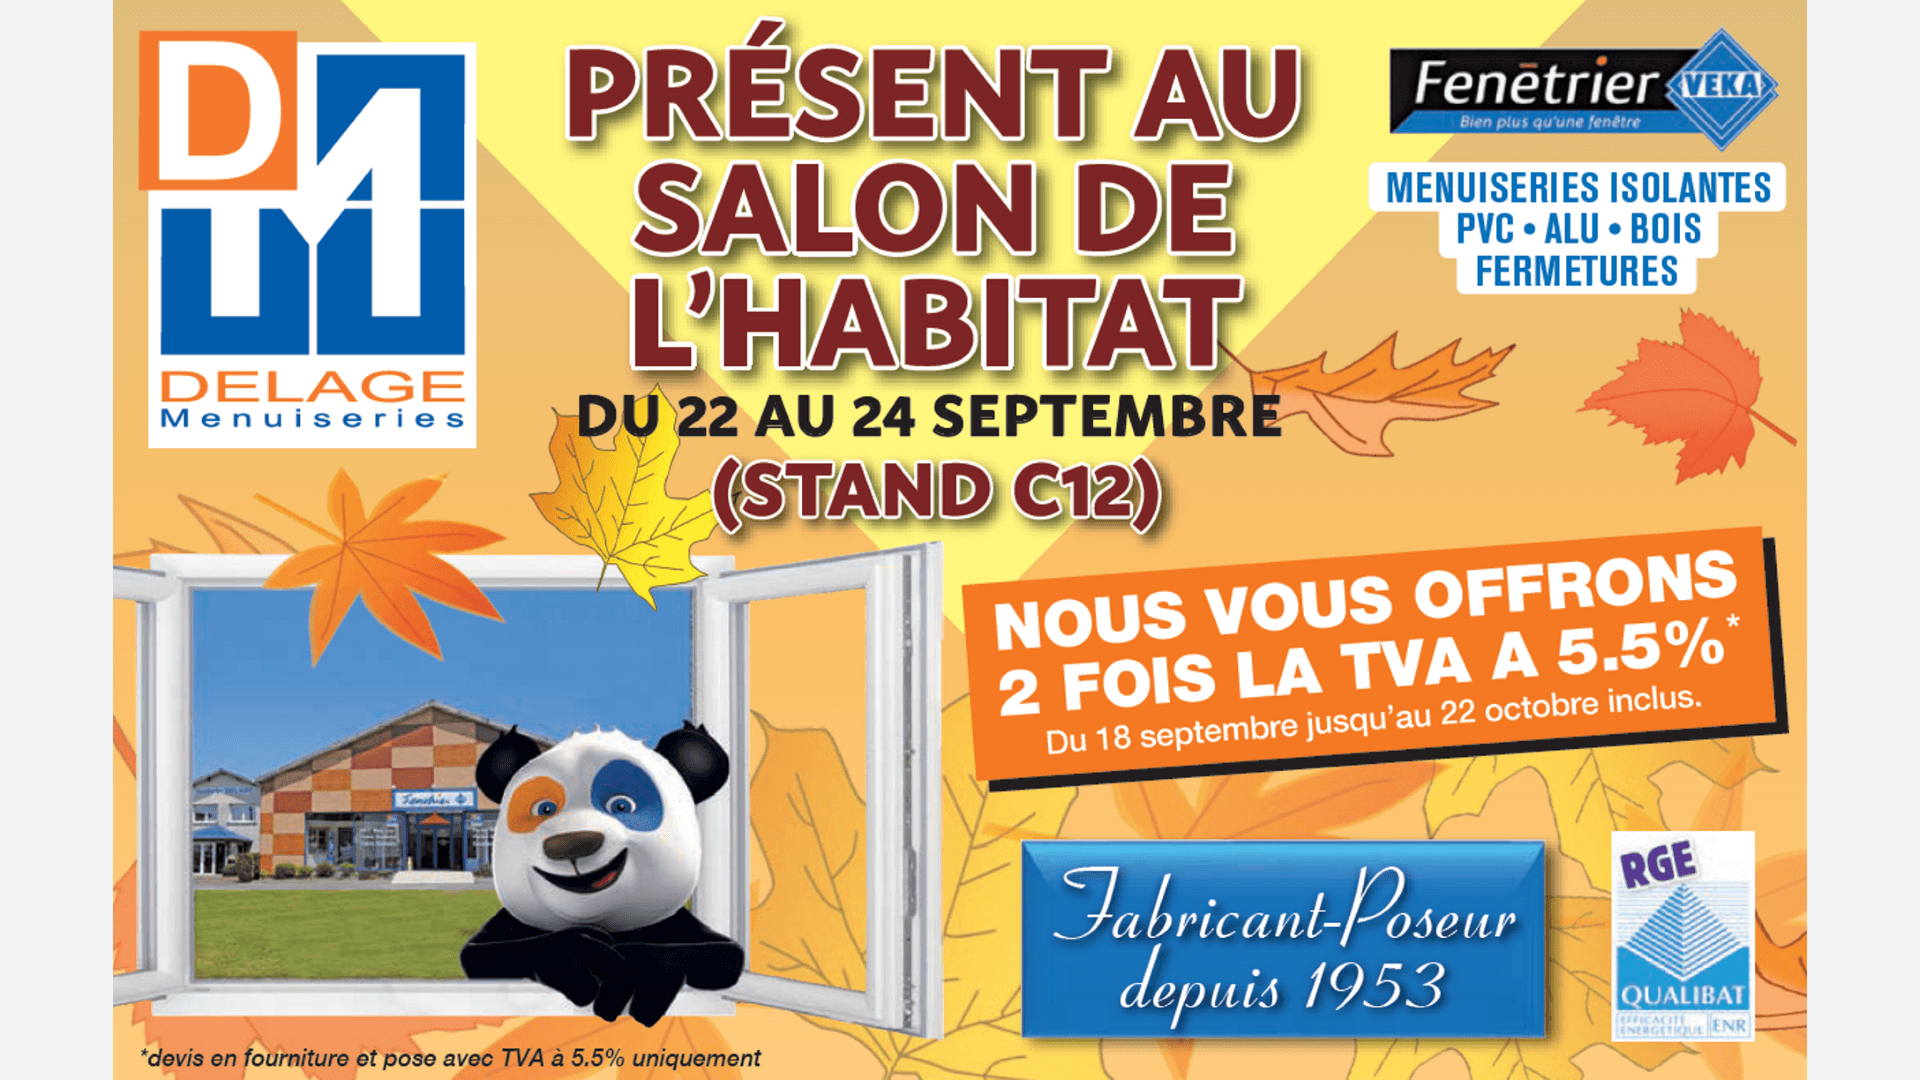 Salon de l habitat de limoges 2017 delage menuiseries for Salon de l habitat brive